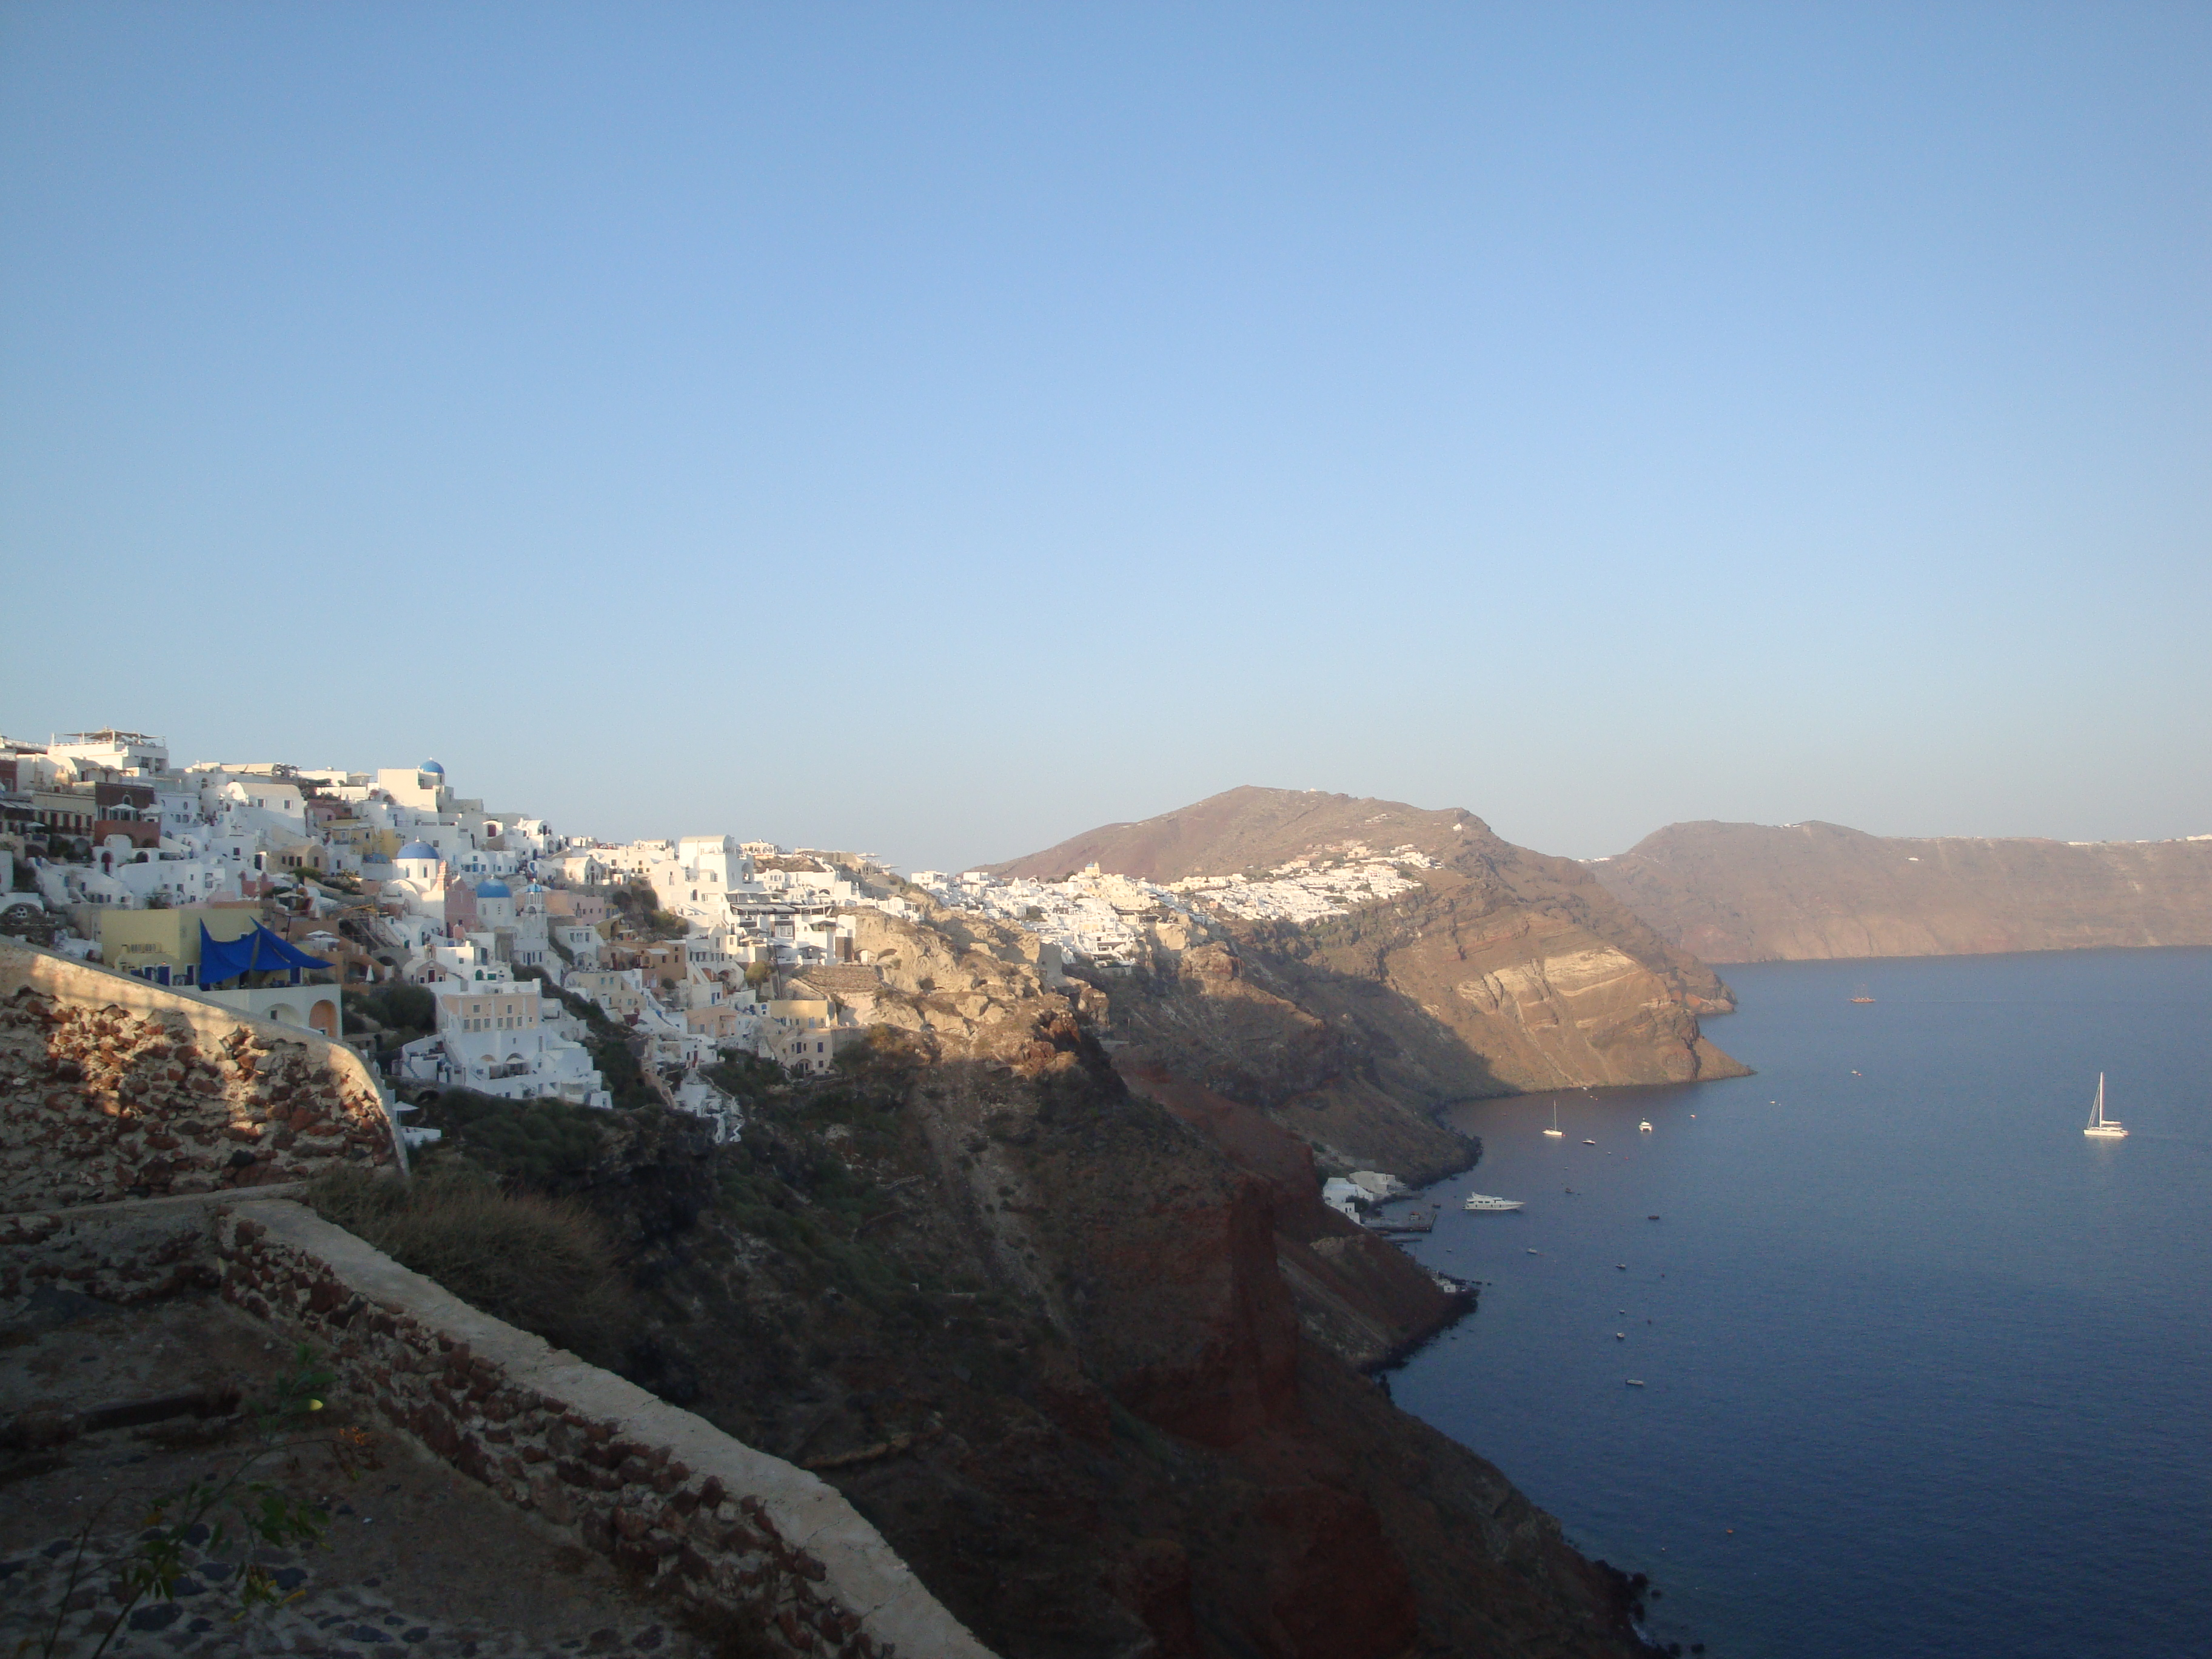 25. The other side of Oia - Santorini